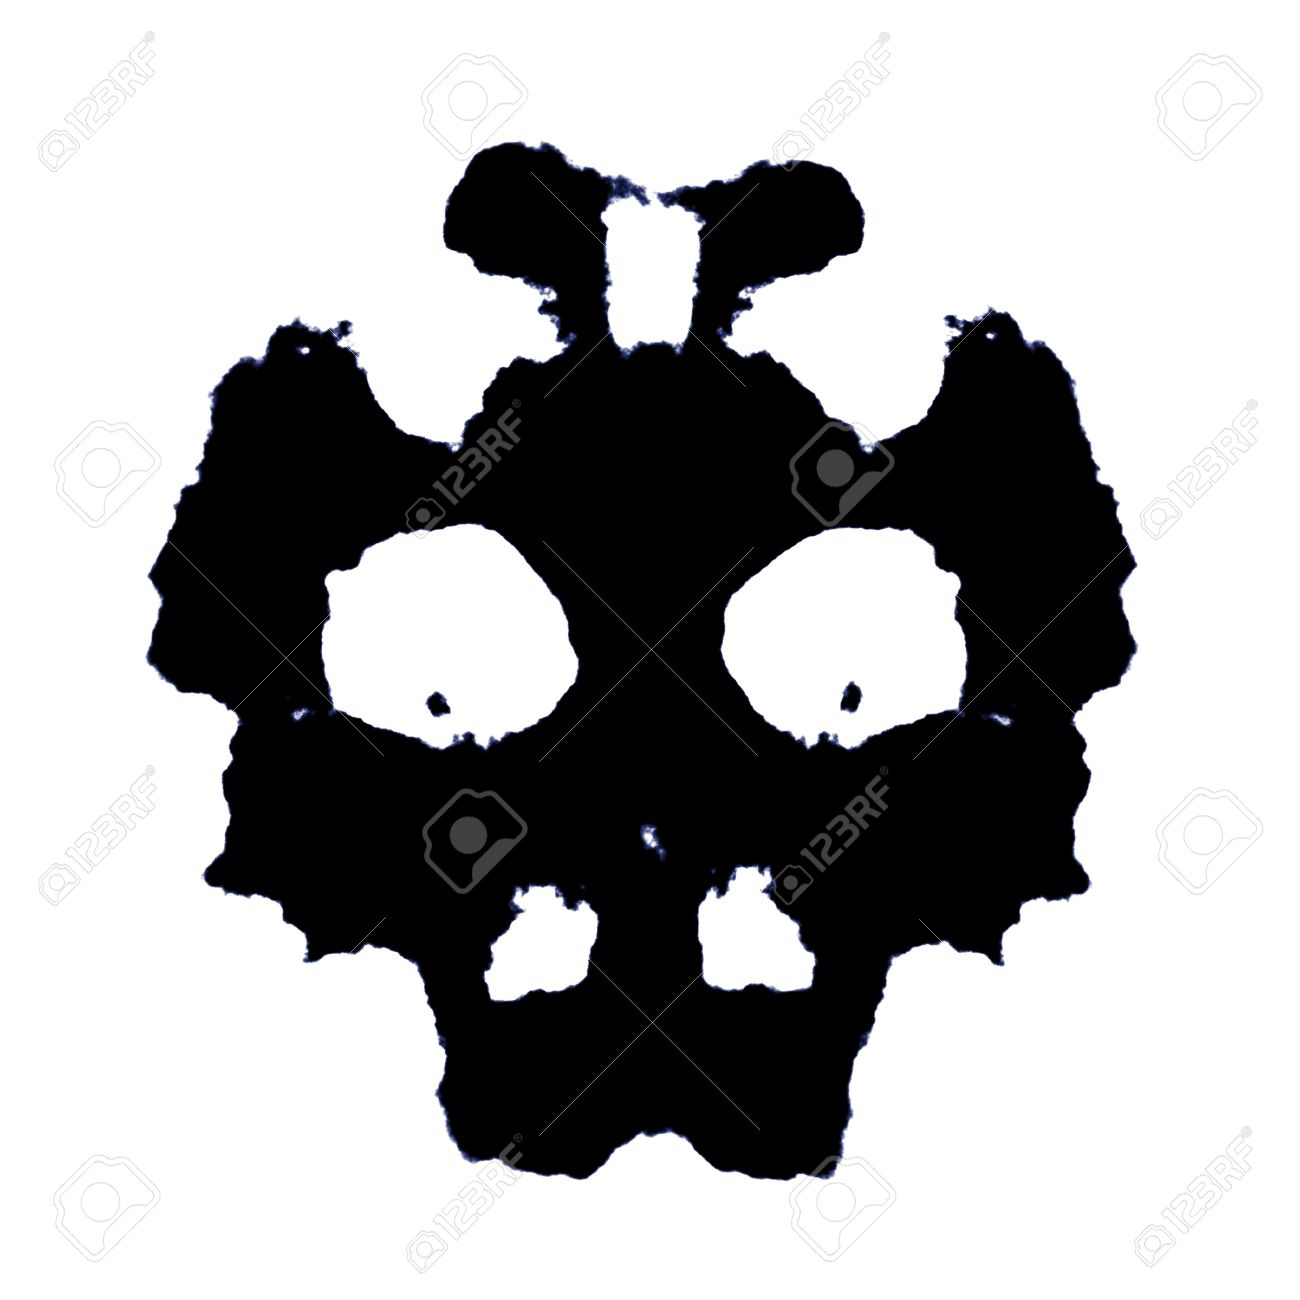 176 Inkblot Test Stock Vector Illustration And Royalty Free.